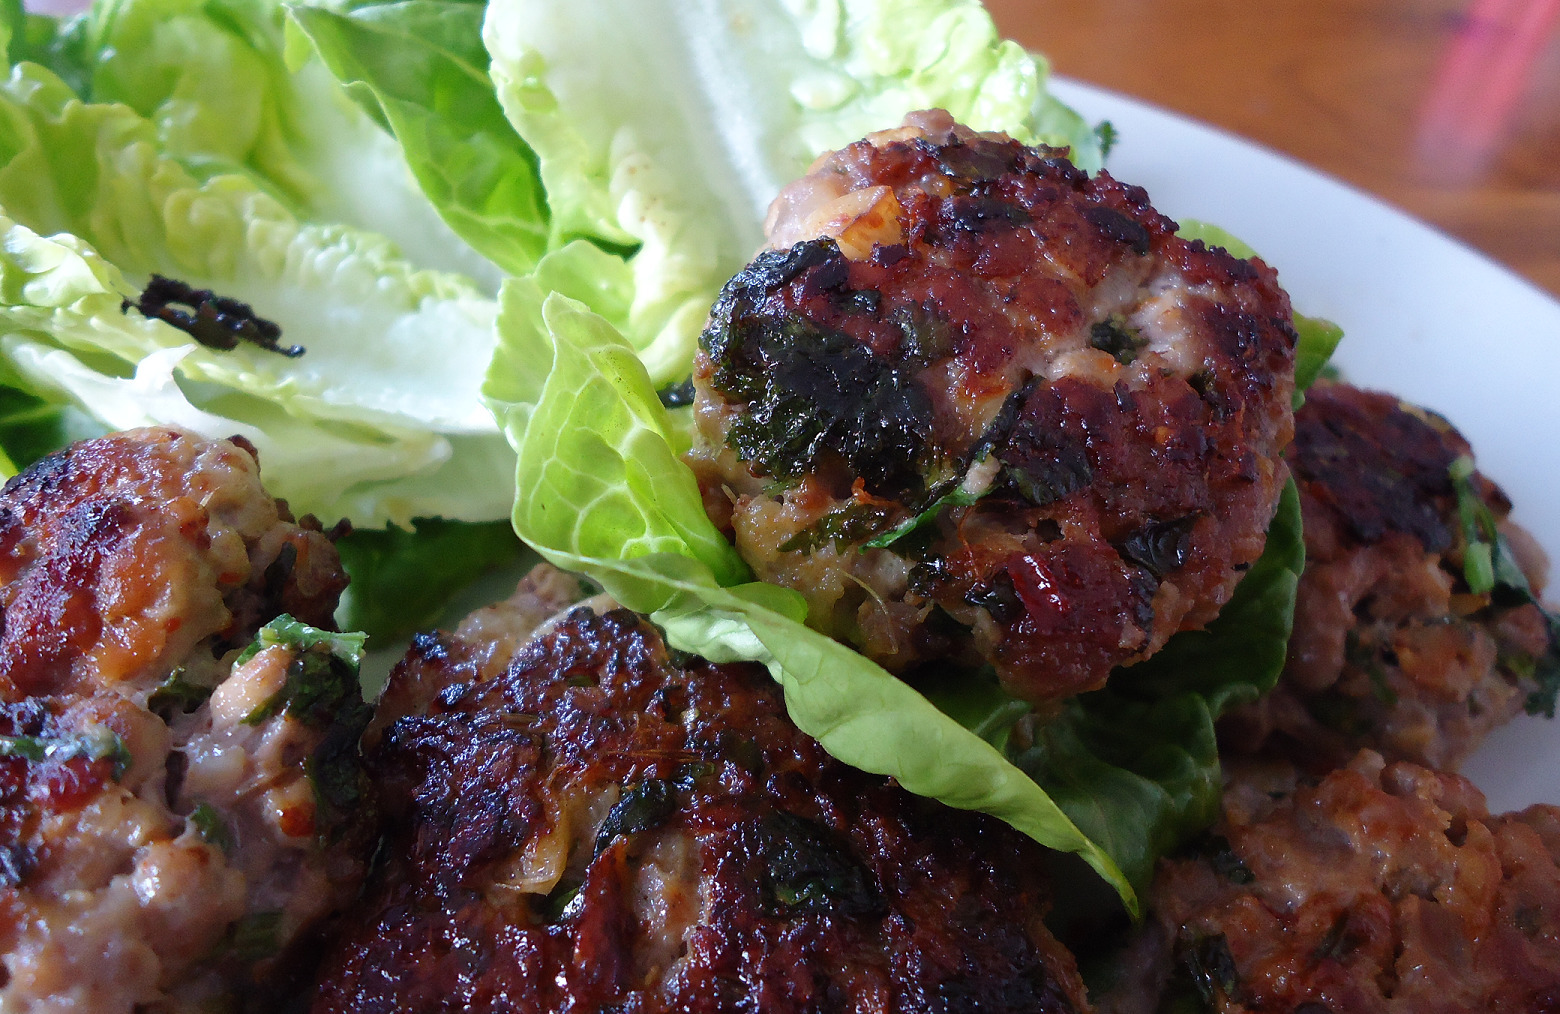 Thai pork burgers with a spicy dipping sauce